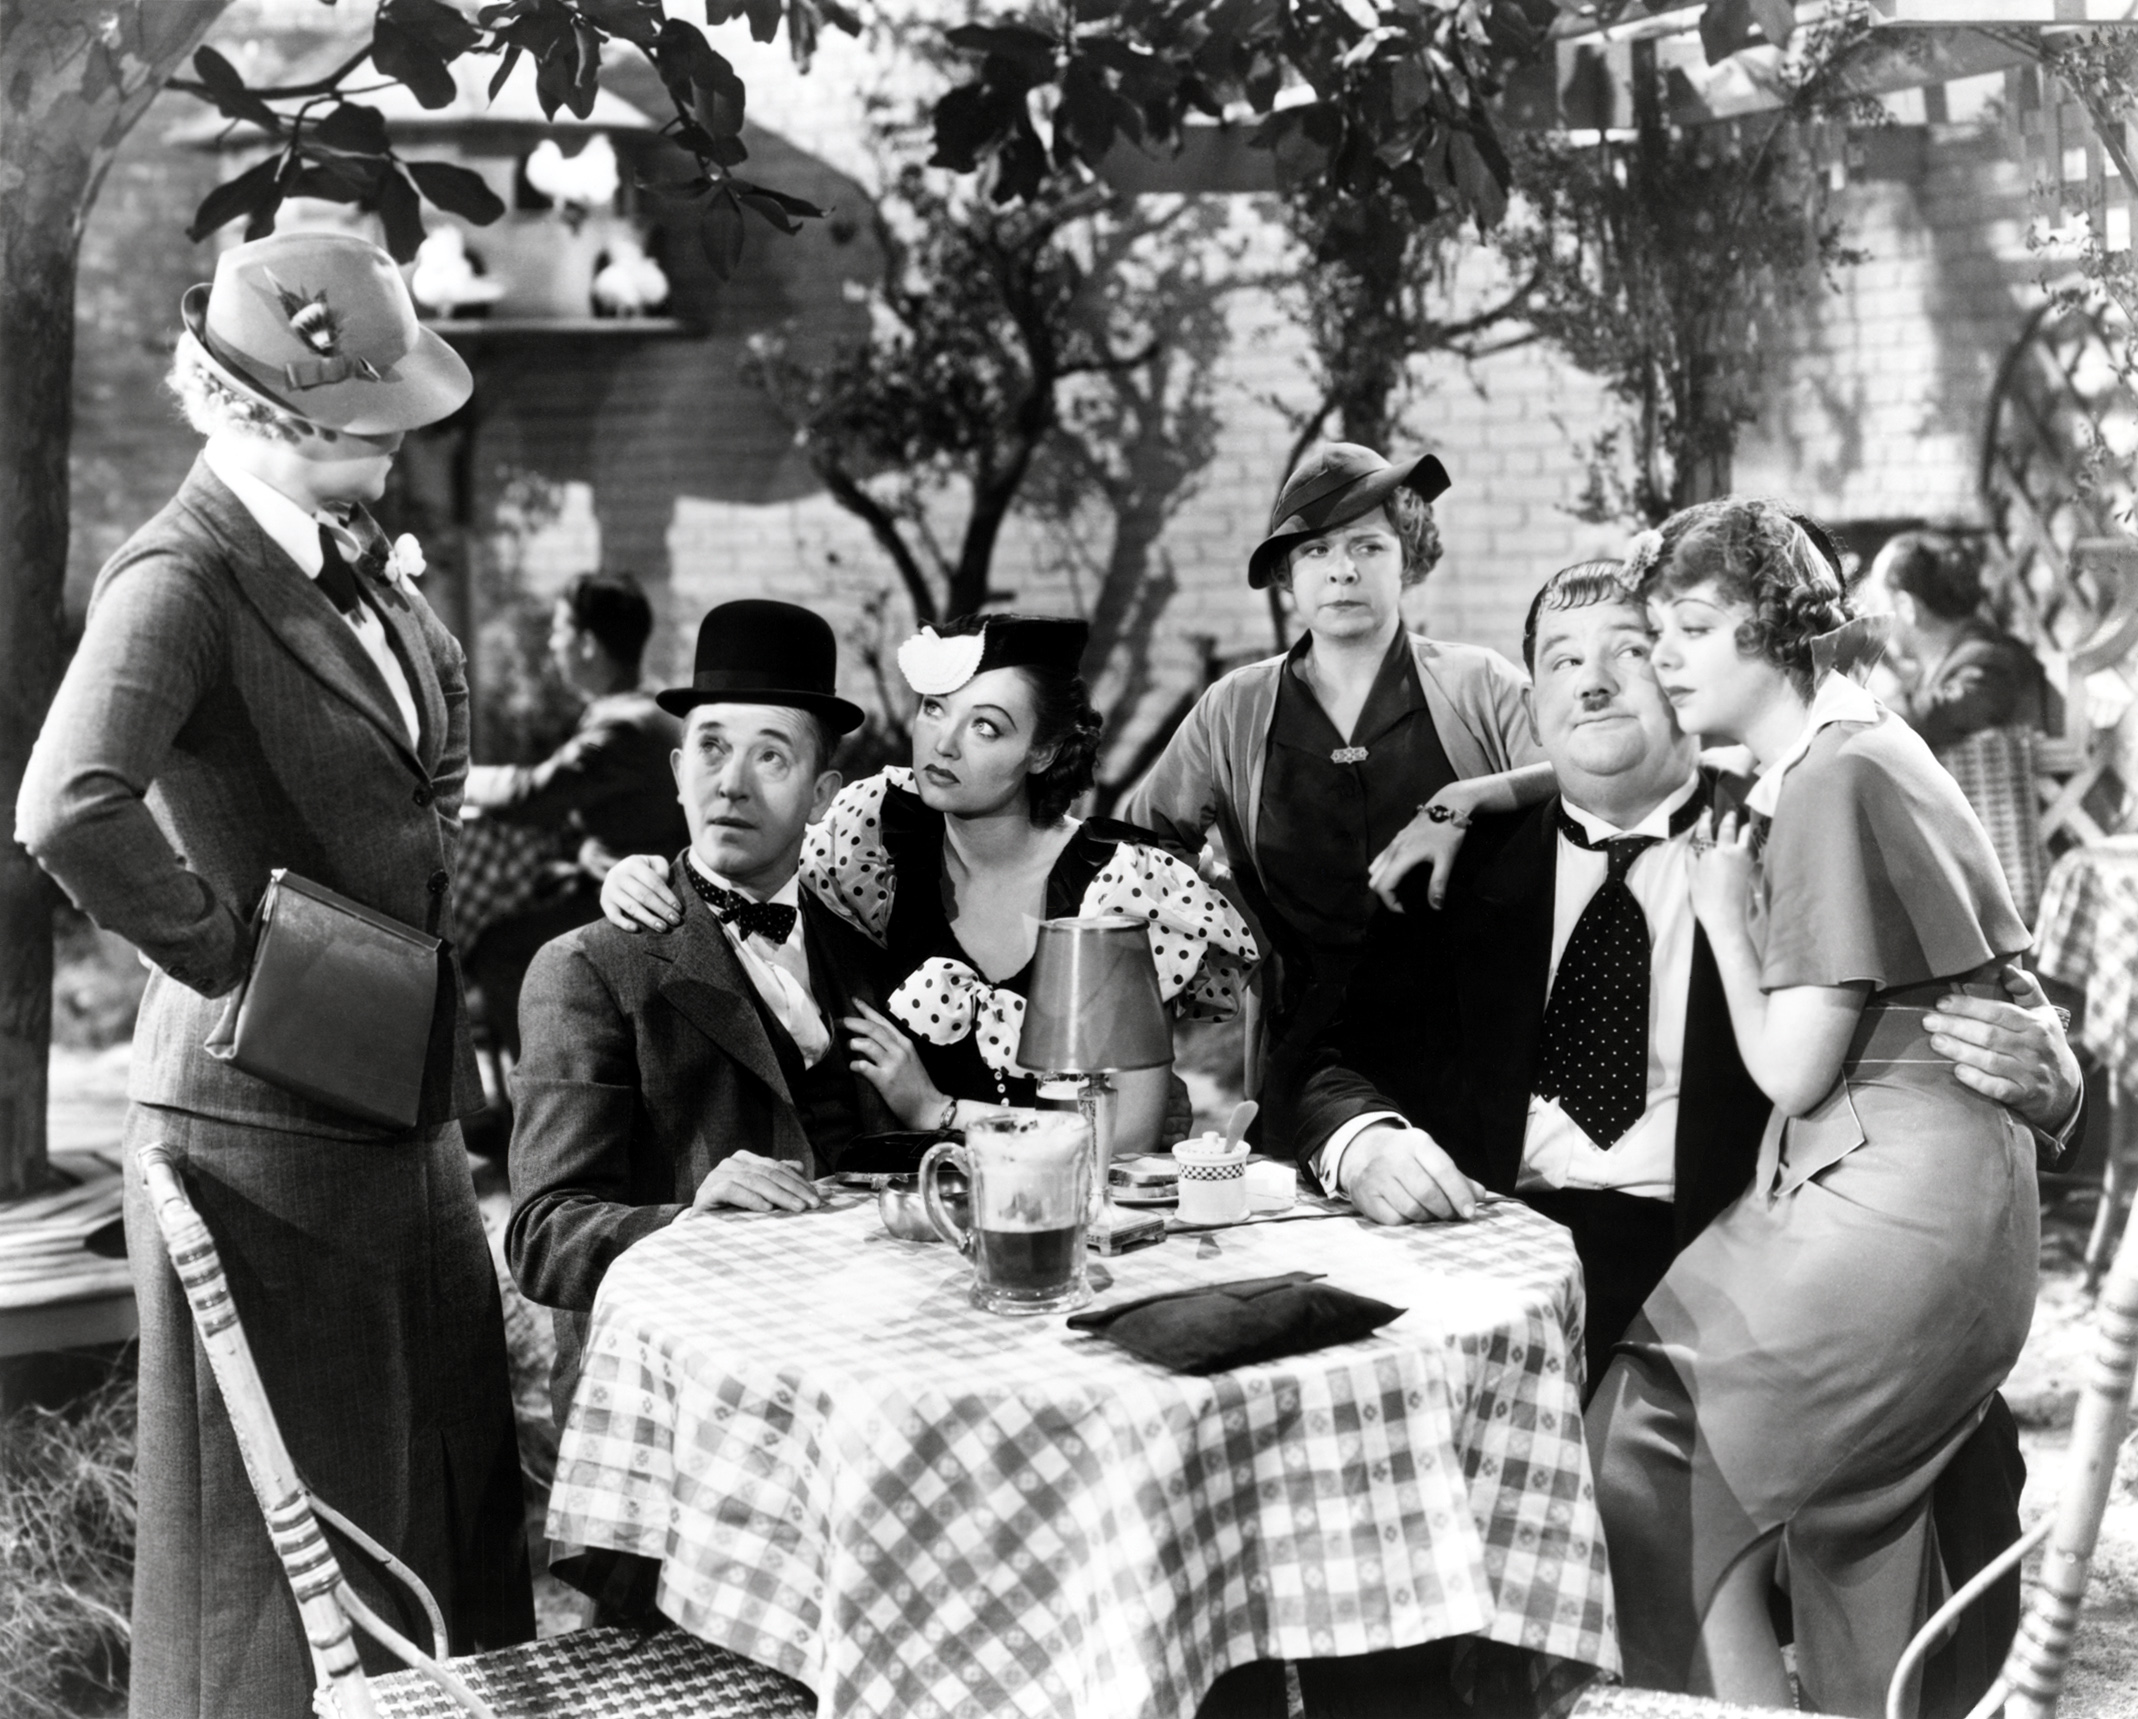 Laurel & Hardy with Ladies (L to R) Betty Healy, Lona Andre, Daphne Pollard, Iris Adrian